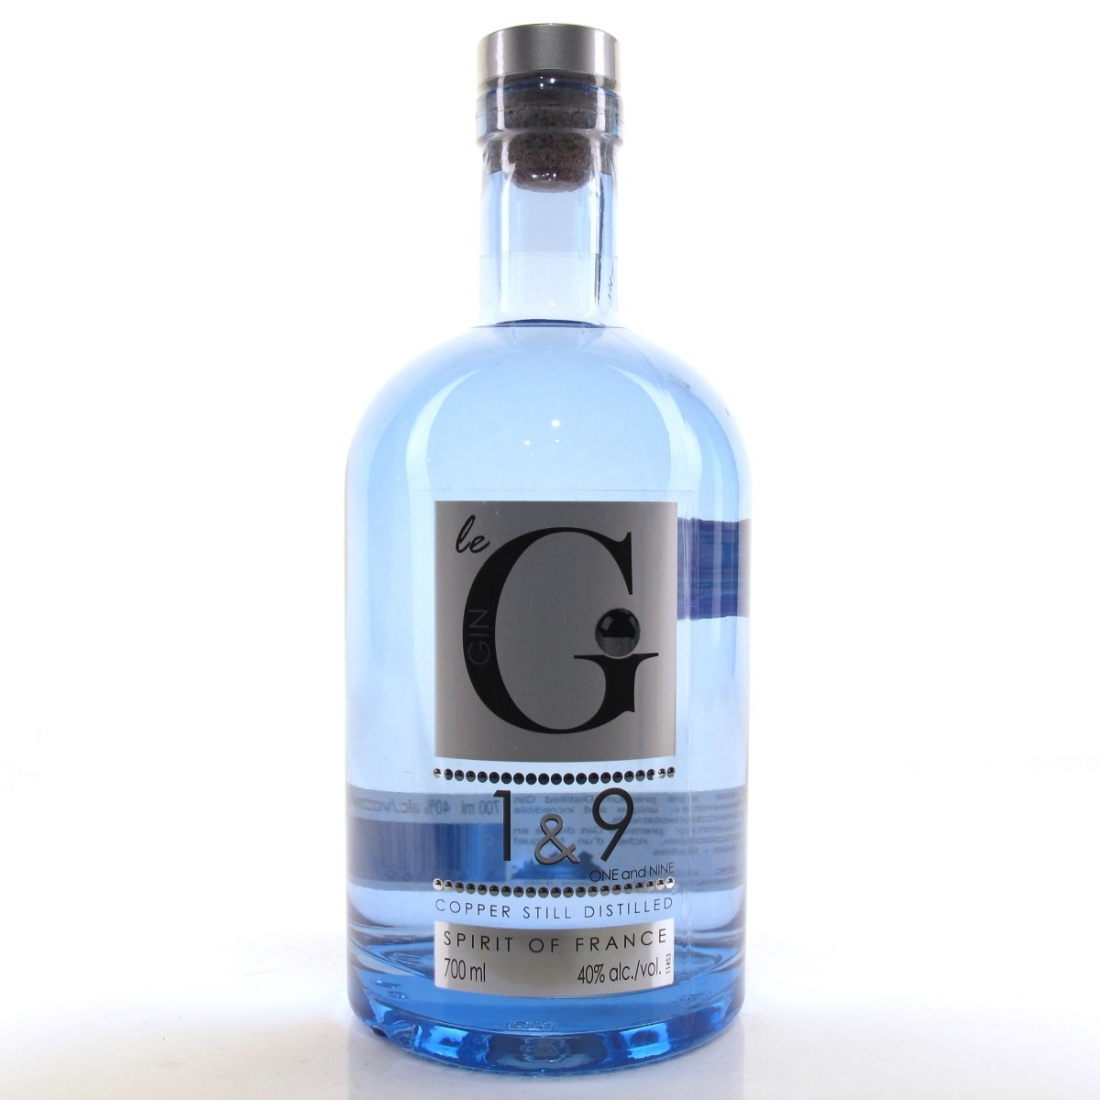 1 and 9 Le Gin